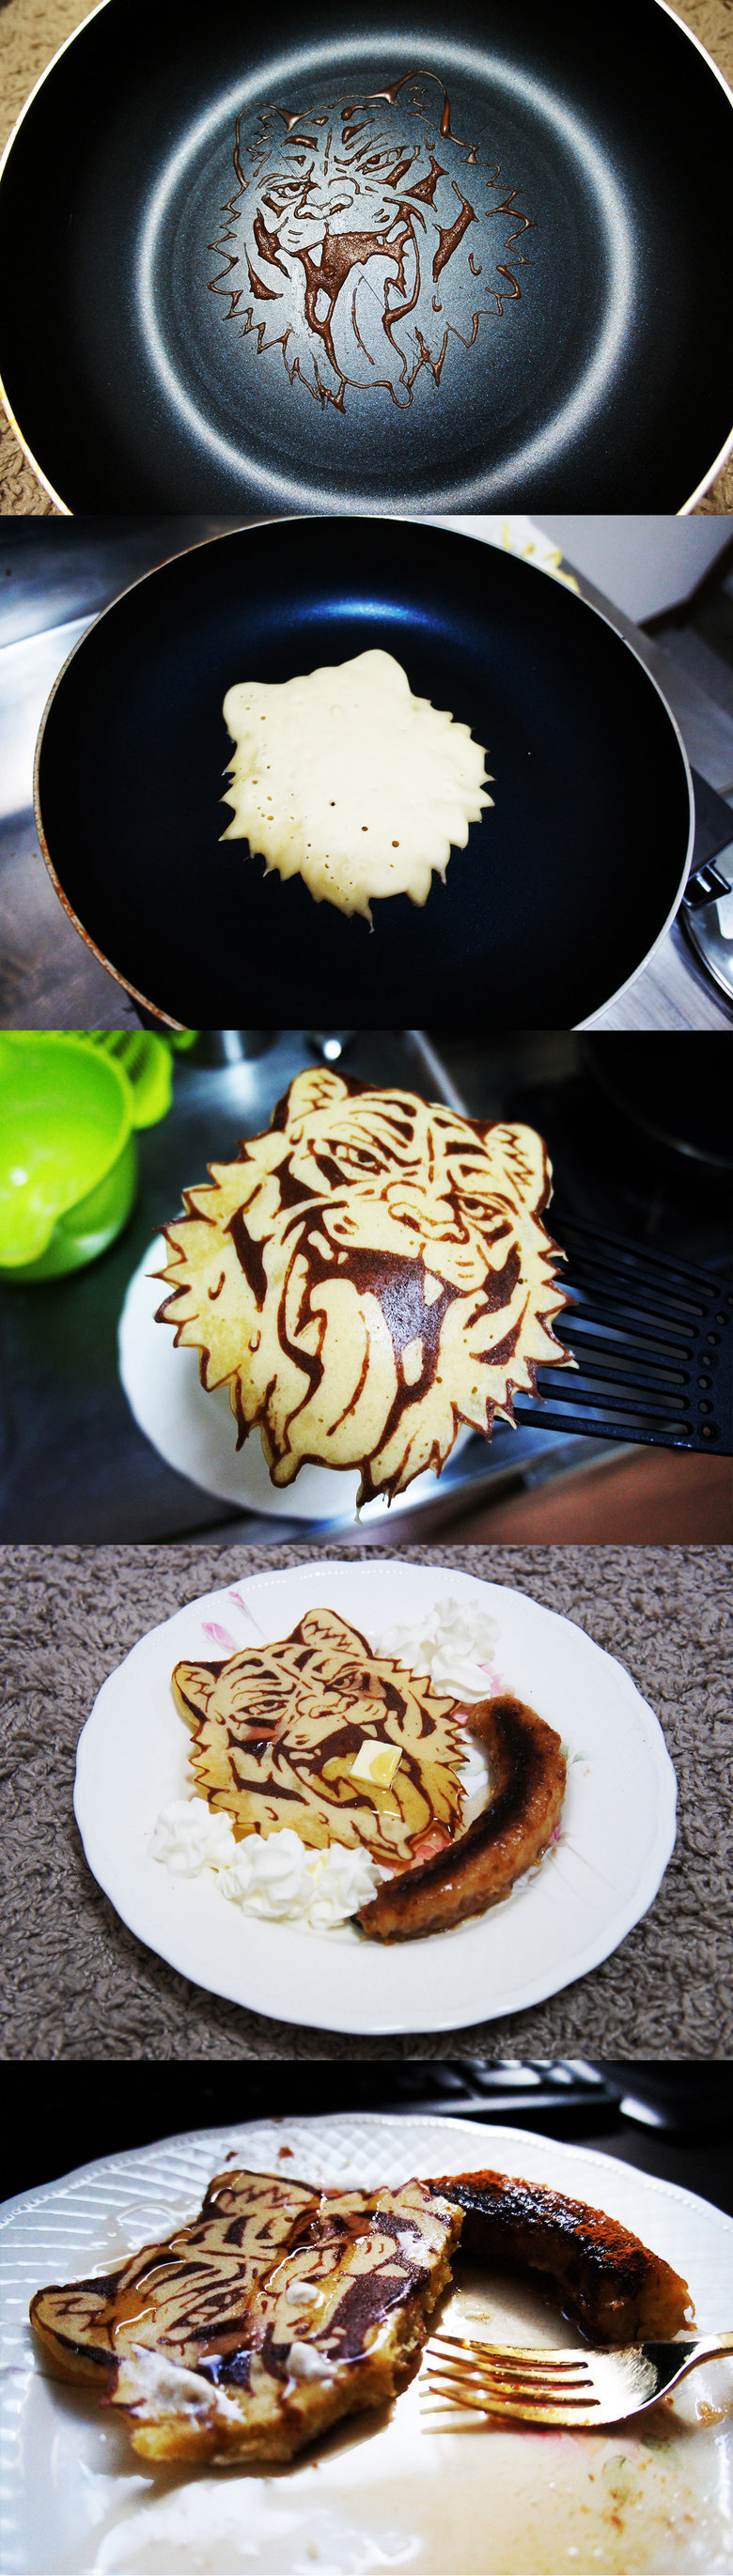 Tiger Pancake. .. that tiger face is from gay porn